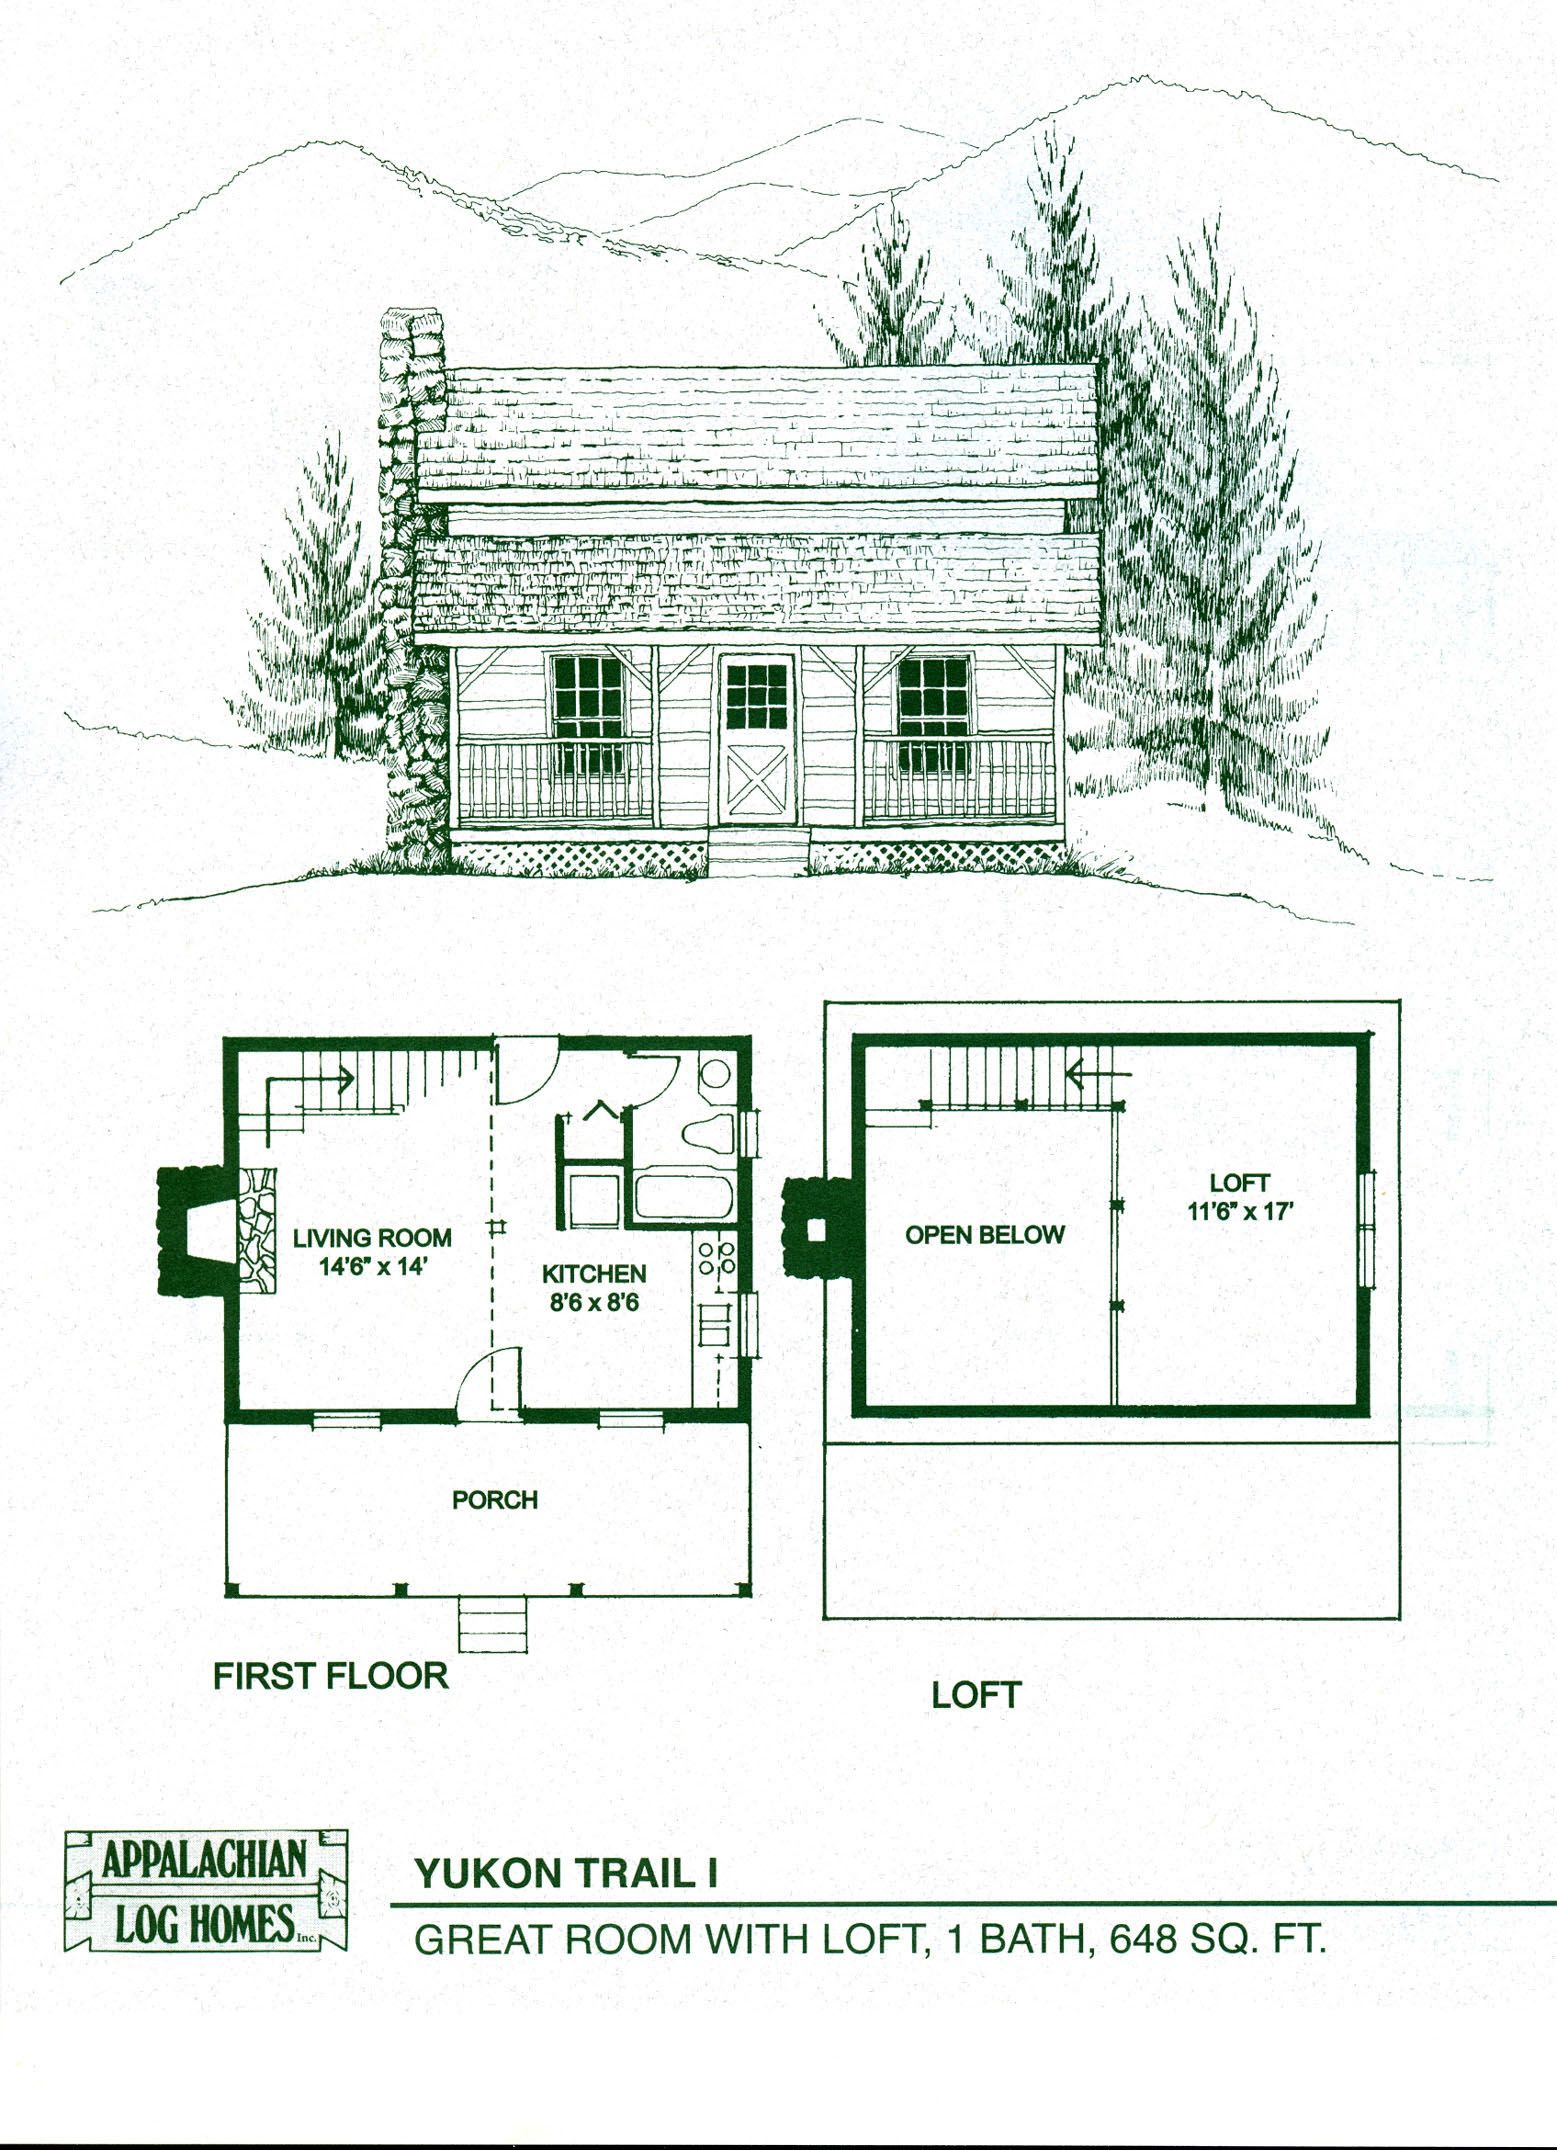 Log home floor plans log cabin kits appalachian log for Small cabin floor plans